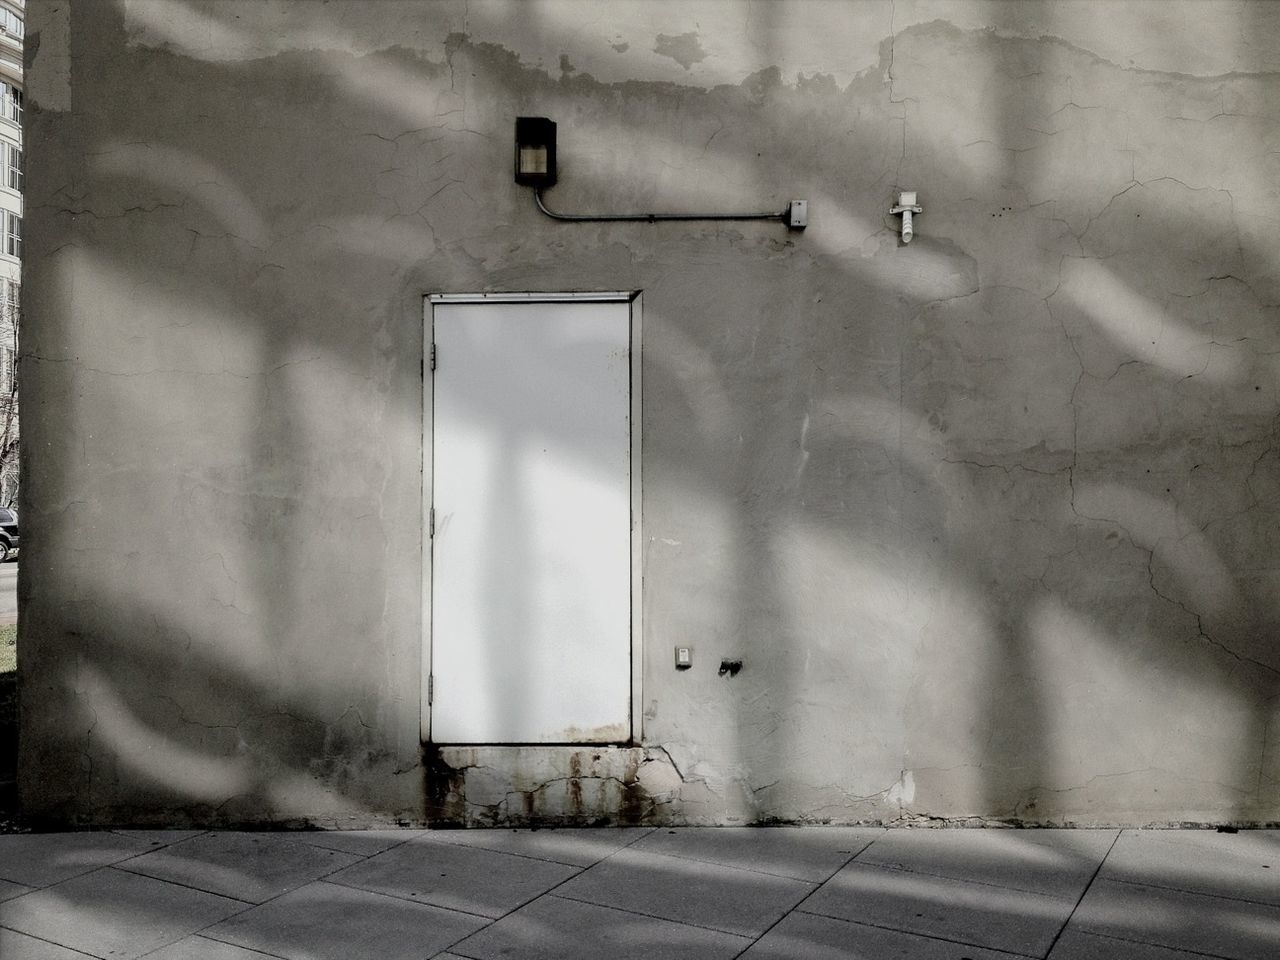 Concrete wall with closed door